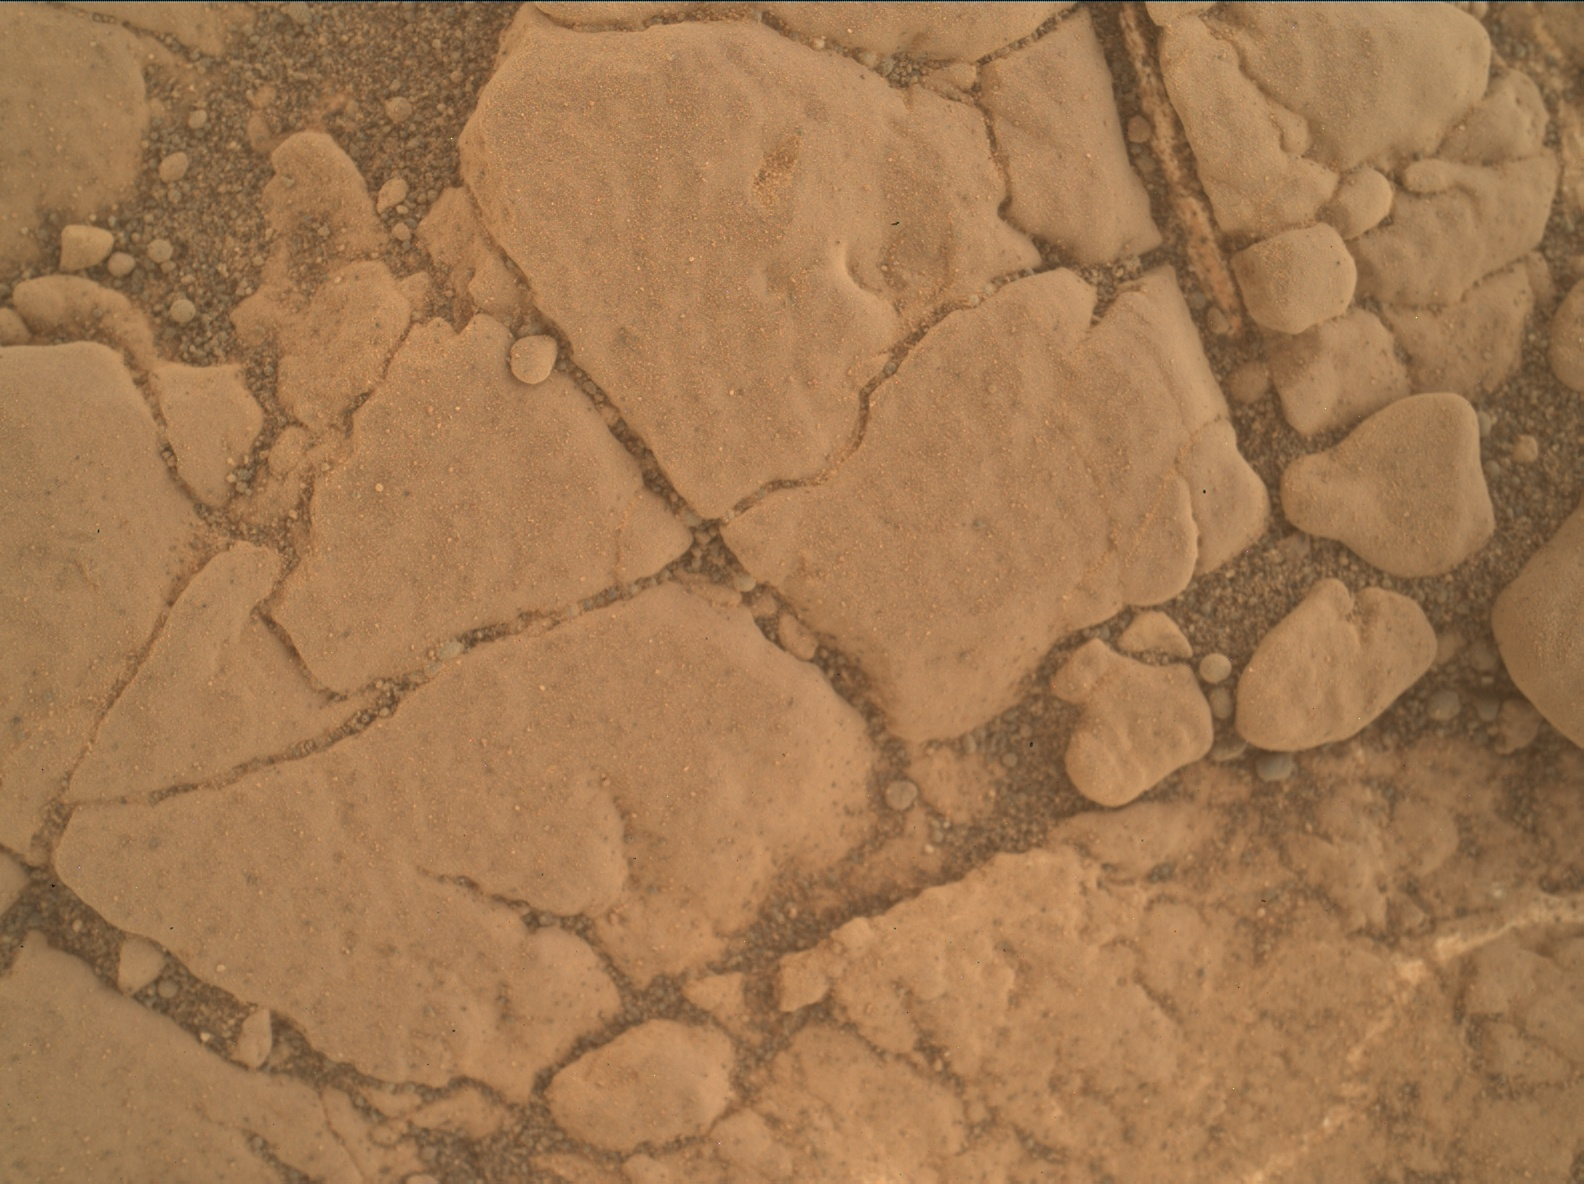 Nasa's Mars rover Curiosity acquired this image using its Mars Hand Lens Imager (MAHLI) on Sol 2577